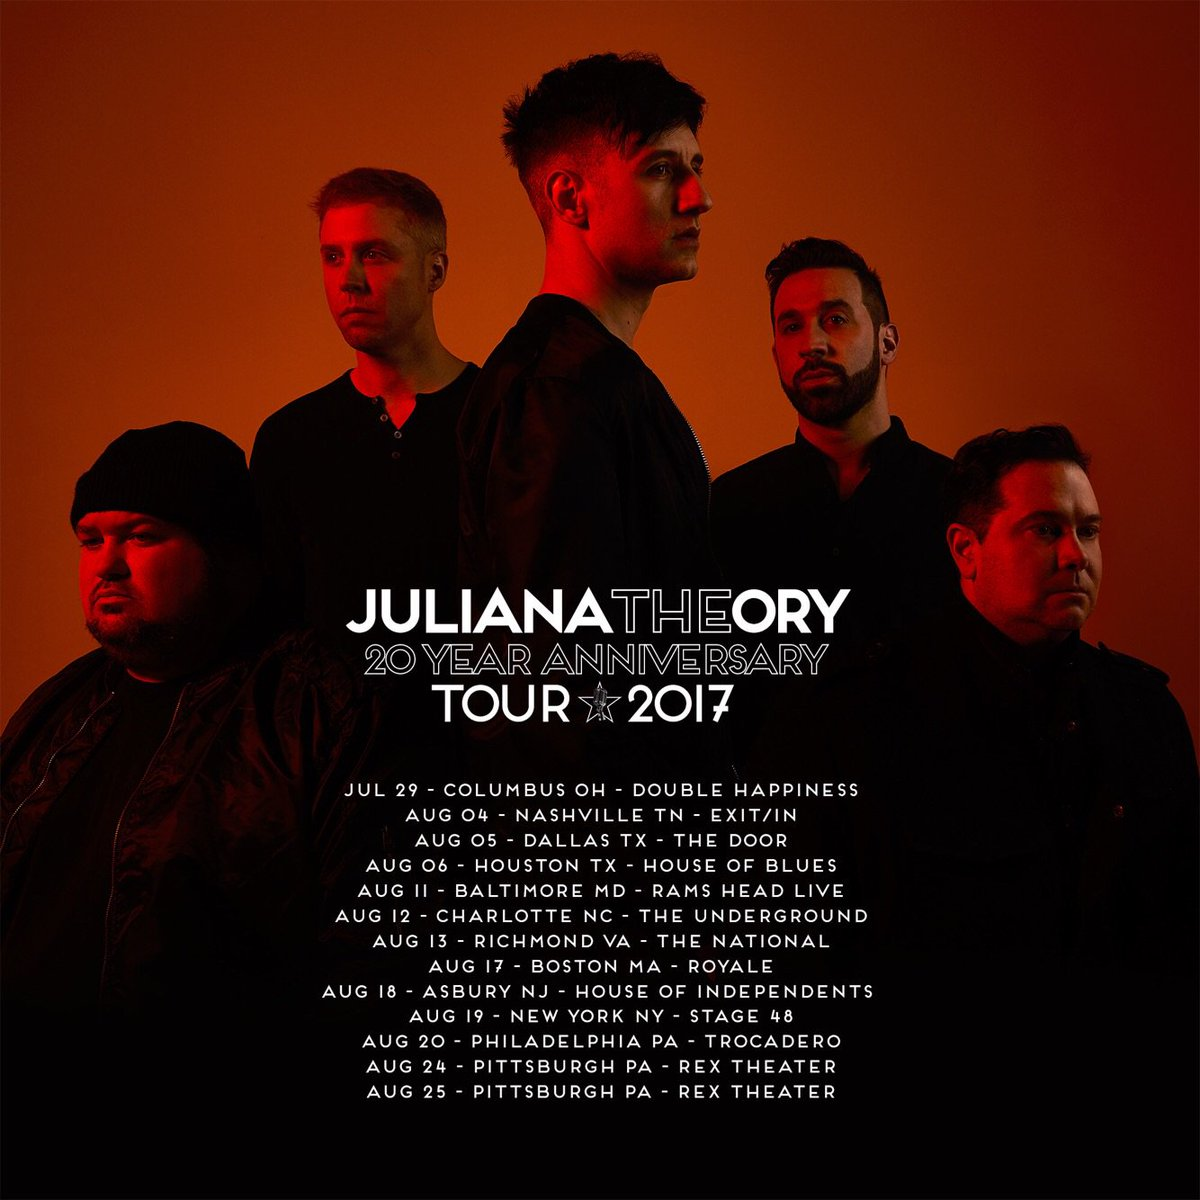 WE R BACK & GOING ON TOUR THIS SUMMER 2017!!  VIP ticket packs on sale now GA on sale 5/1  https://t.co/guSwlNsJ7D https://t.co/vYu9TEAruQ